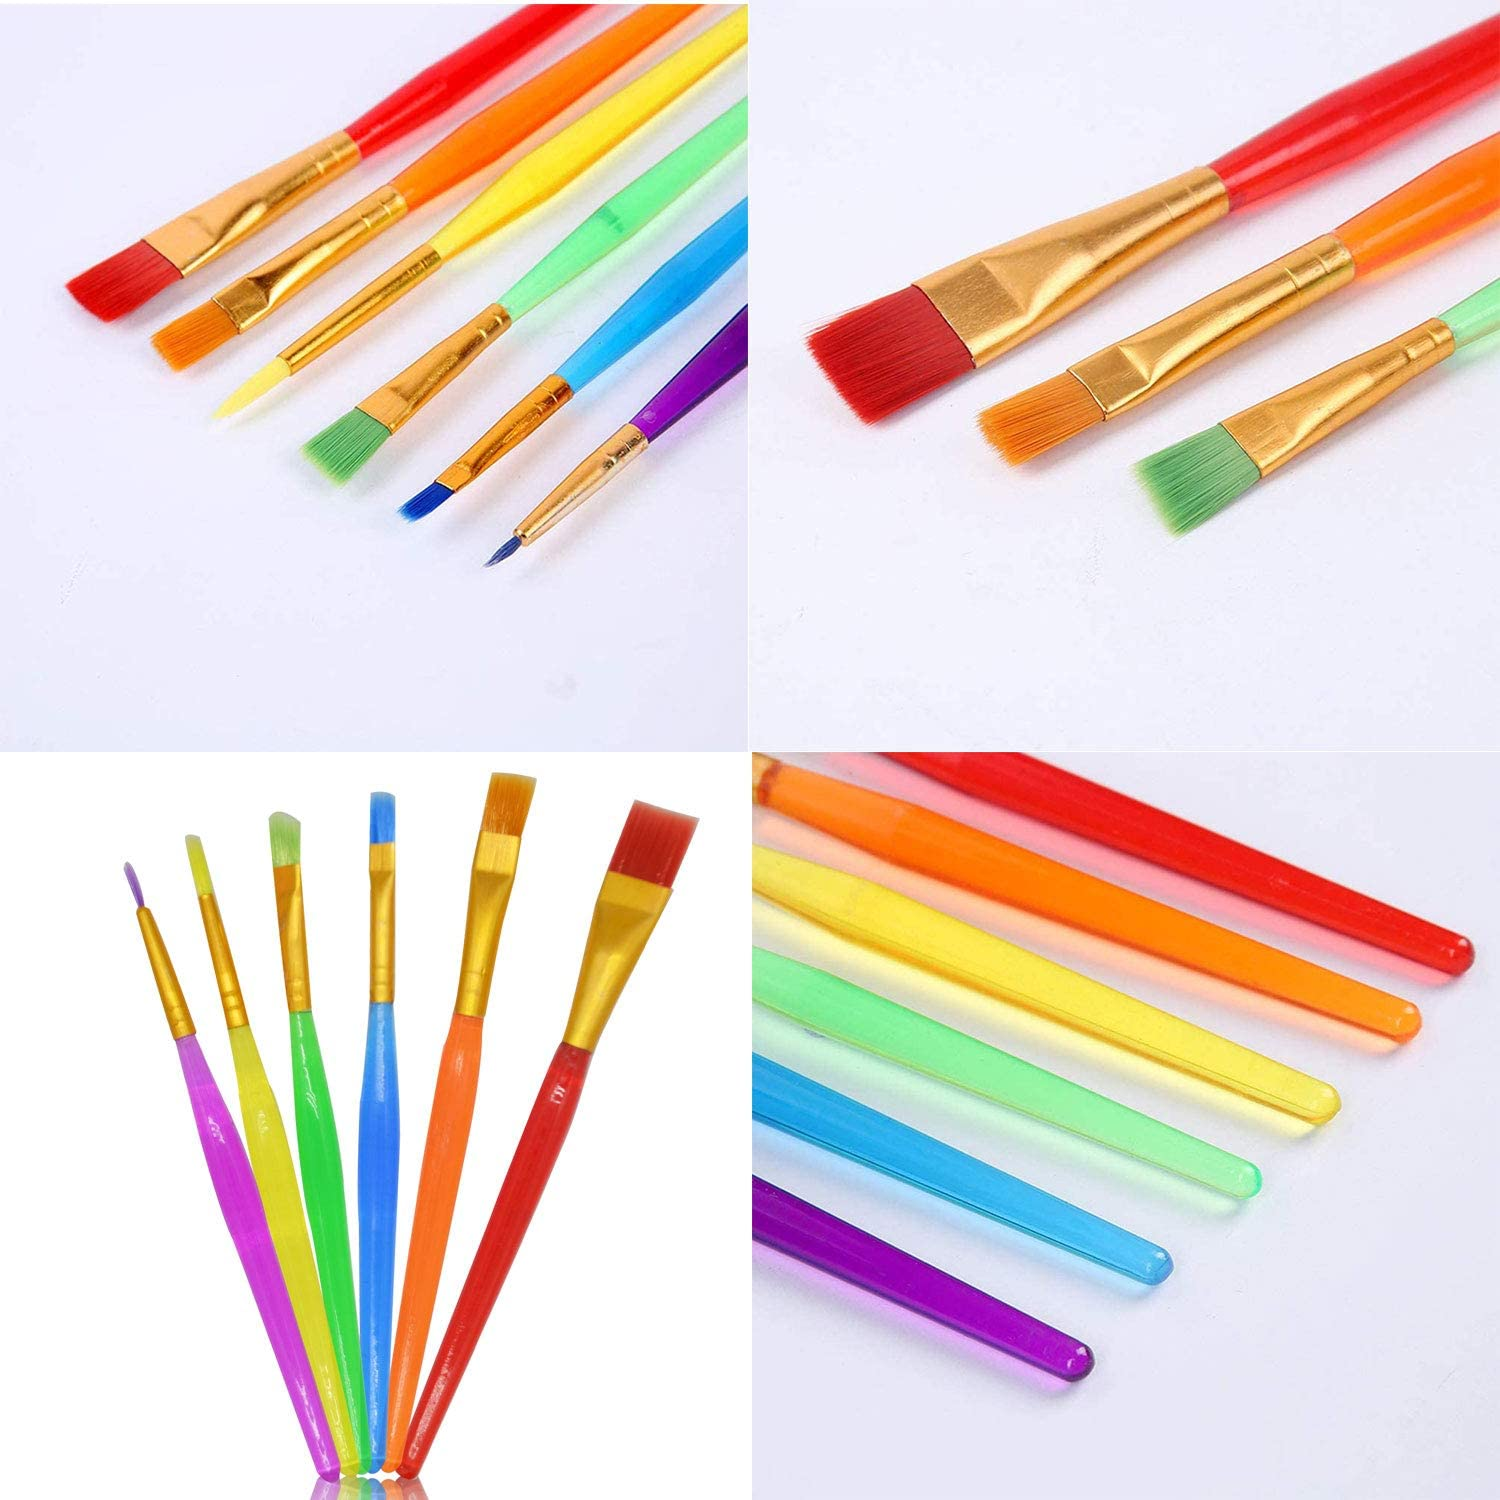 Xfantong 6 Pcs//Set Kids Painting Brush Kit Clean Colorful All Purpose Kids Paint Brush Set for Acrylic Oil Watercolor Gouache Face Painting DIY Craft Professional Art Painting